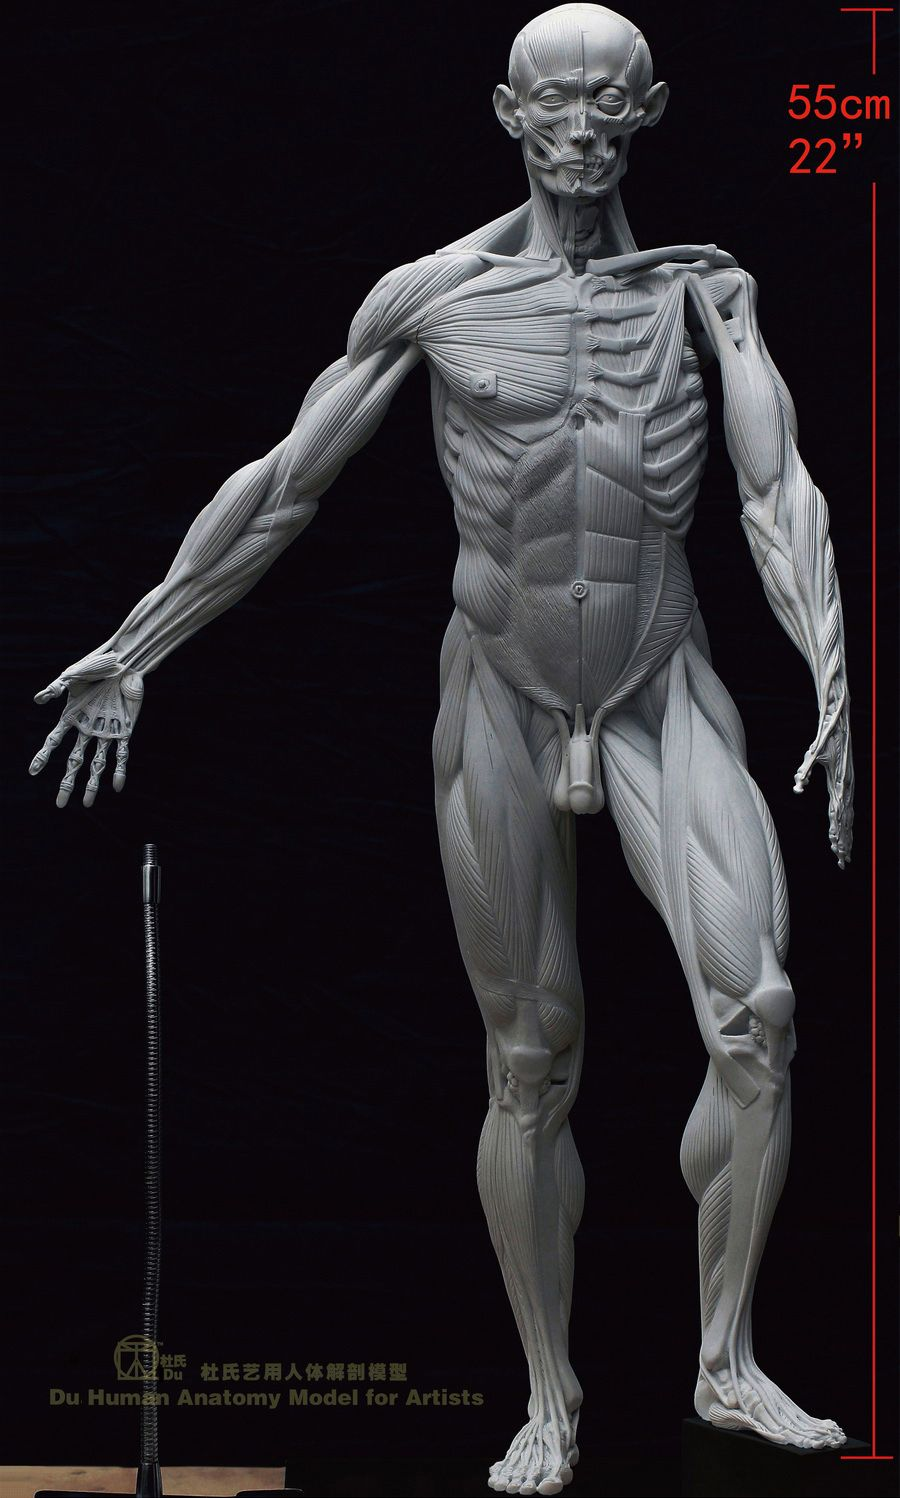 Du-Human-Anatomy-Model-for-Artists-Muscles-Artistic-Mannequin-Male ...